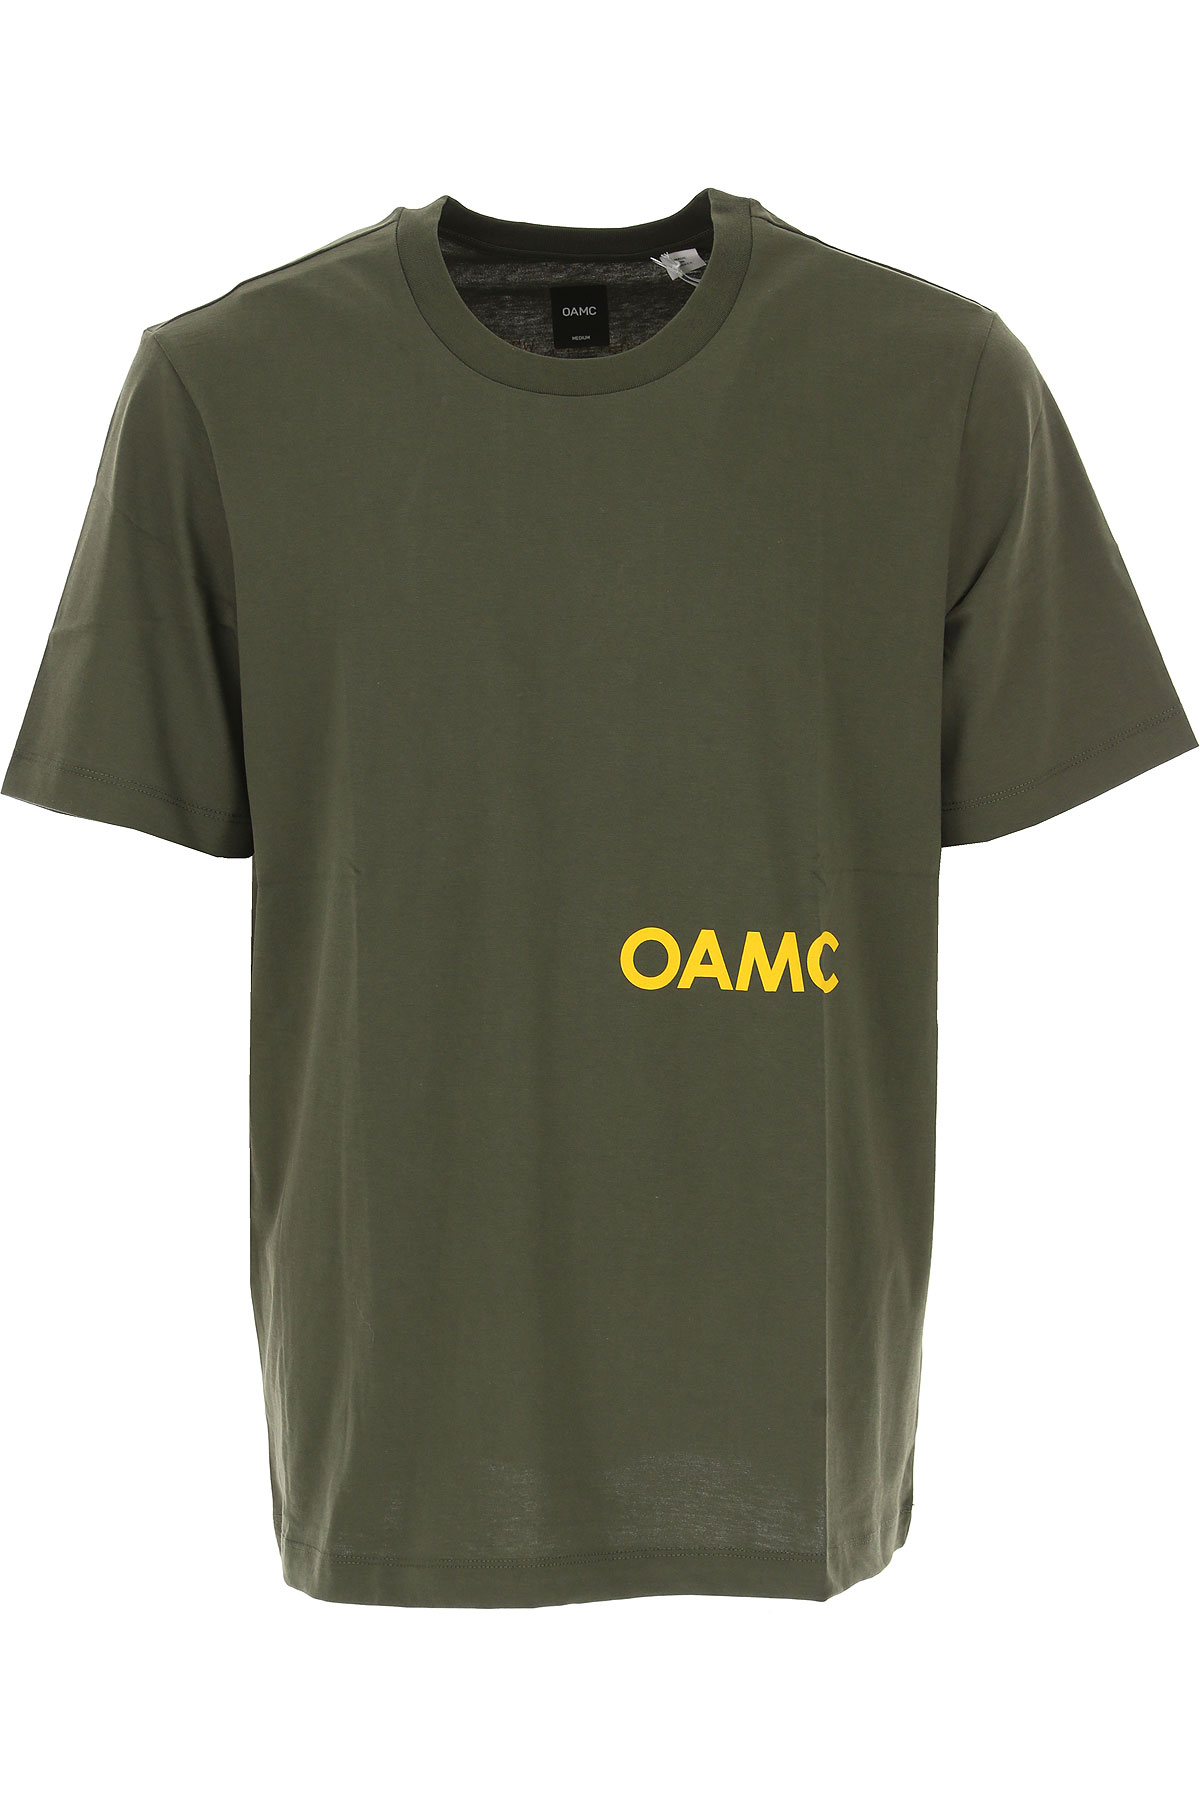 Image of OAMC T-Shirt for Men, Dark Military Green, Cotton, 2017, L M S XS